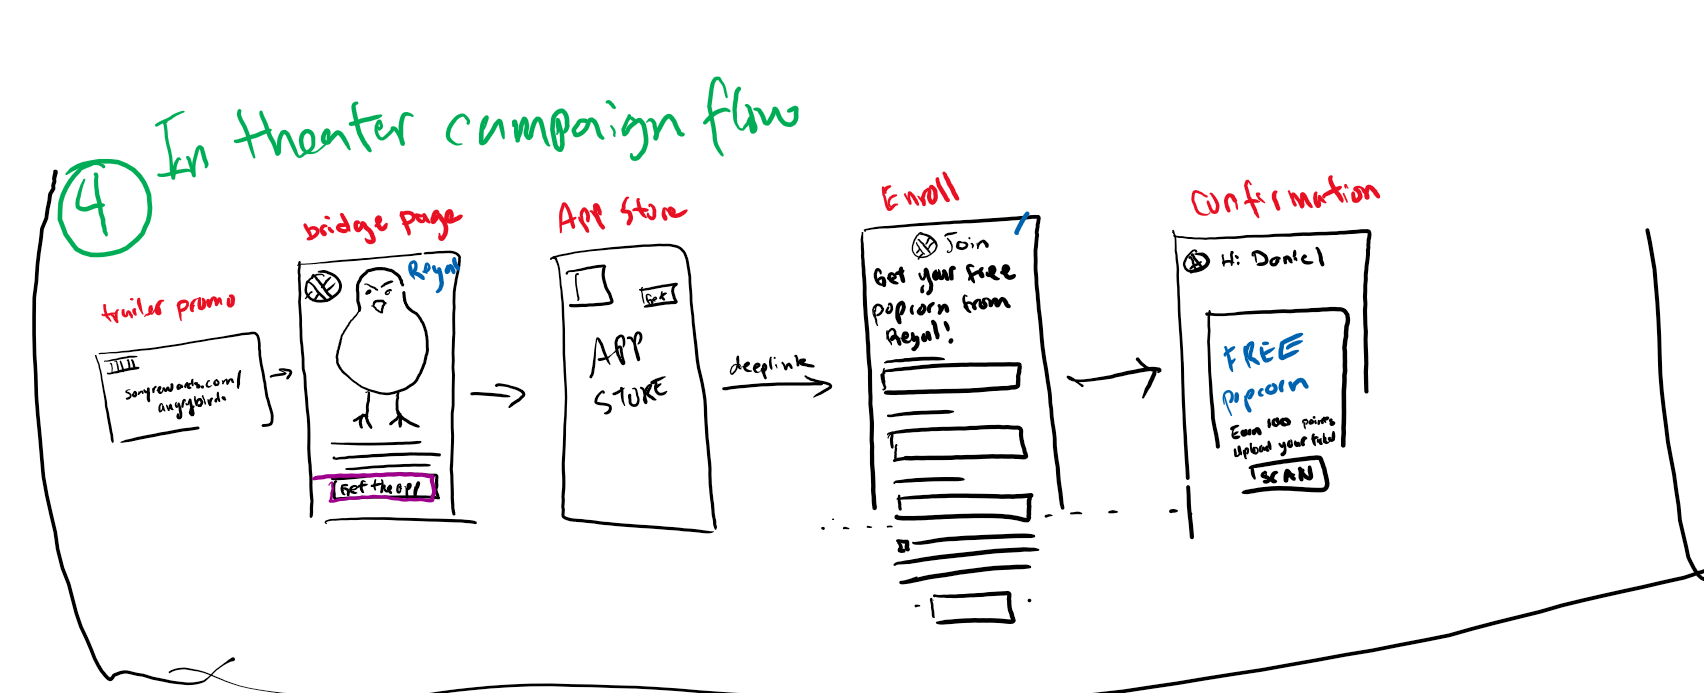 whiteboard-flow.png